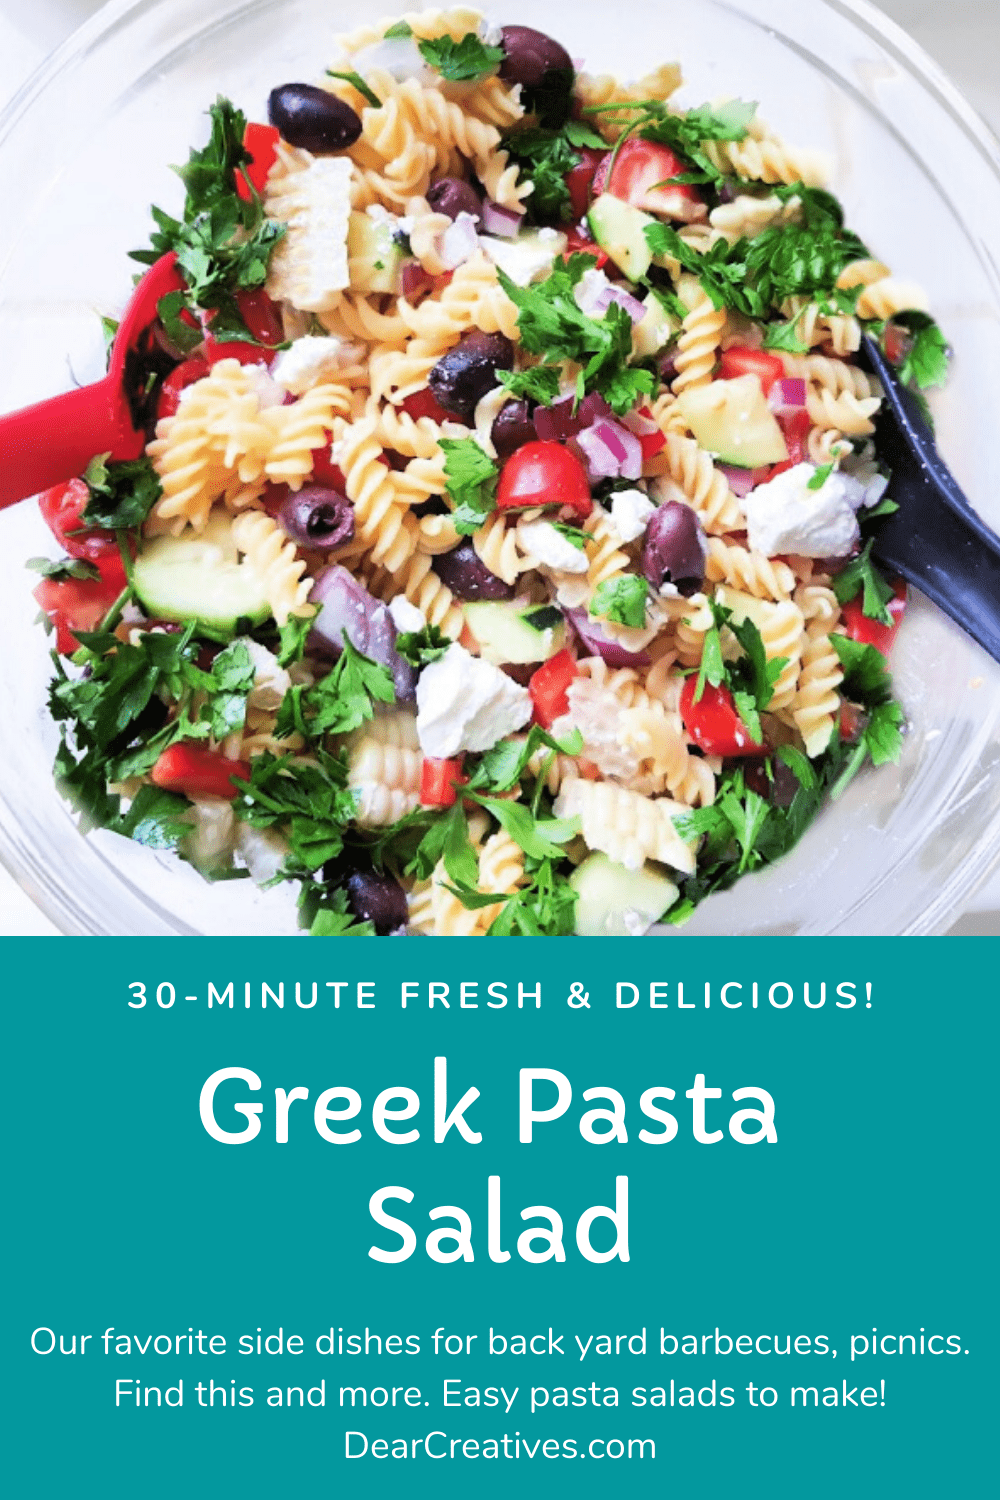 Greek Pasta Salad Quick And Easy To Make!